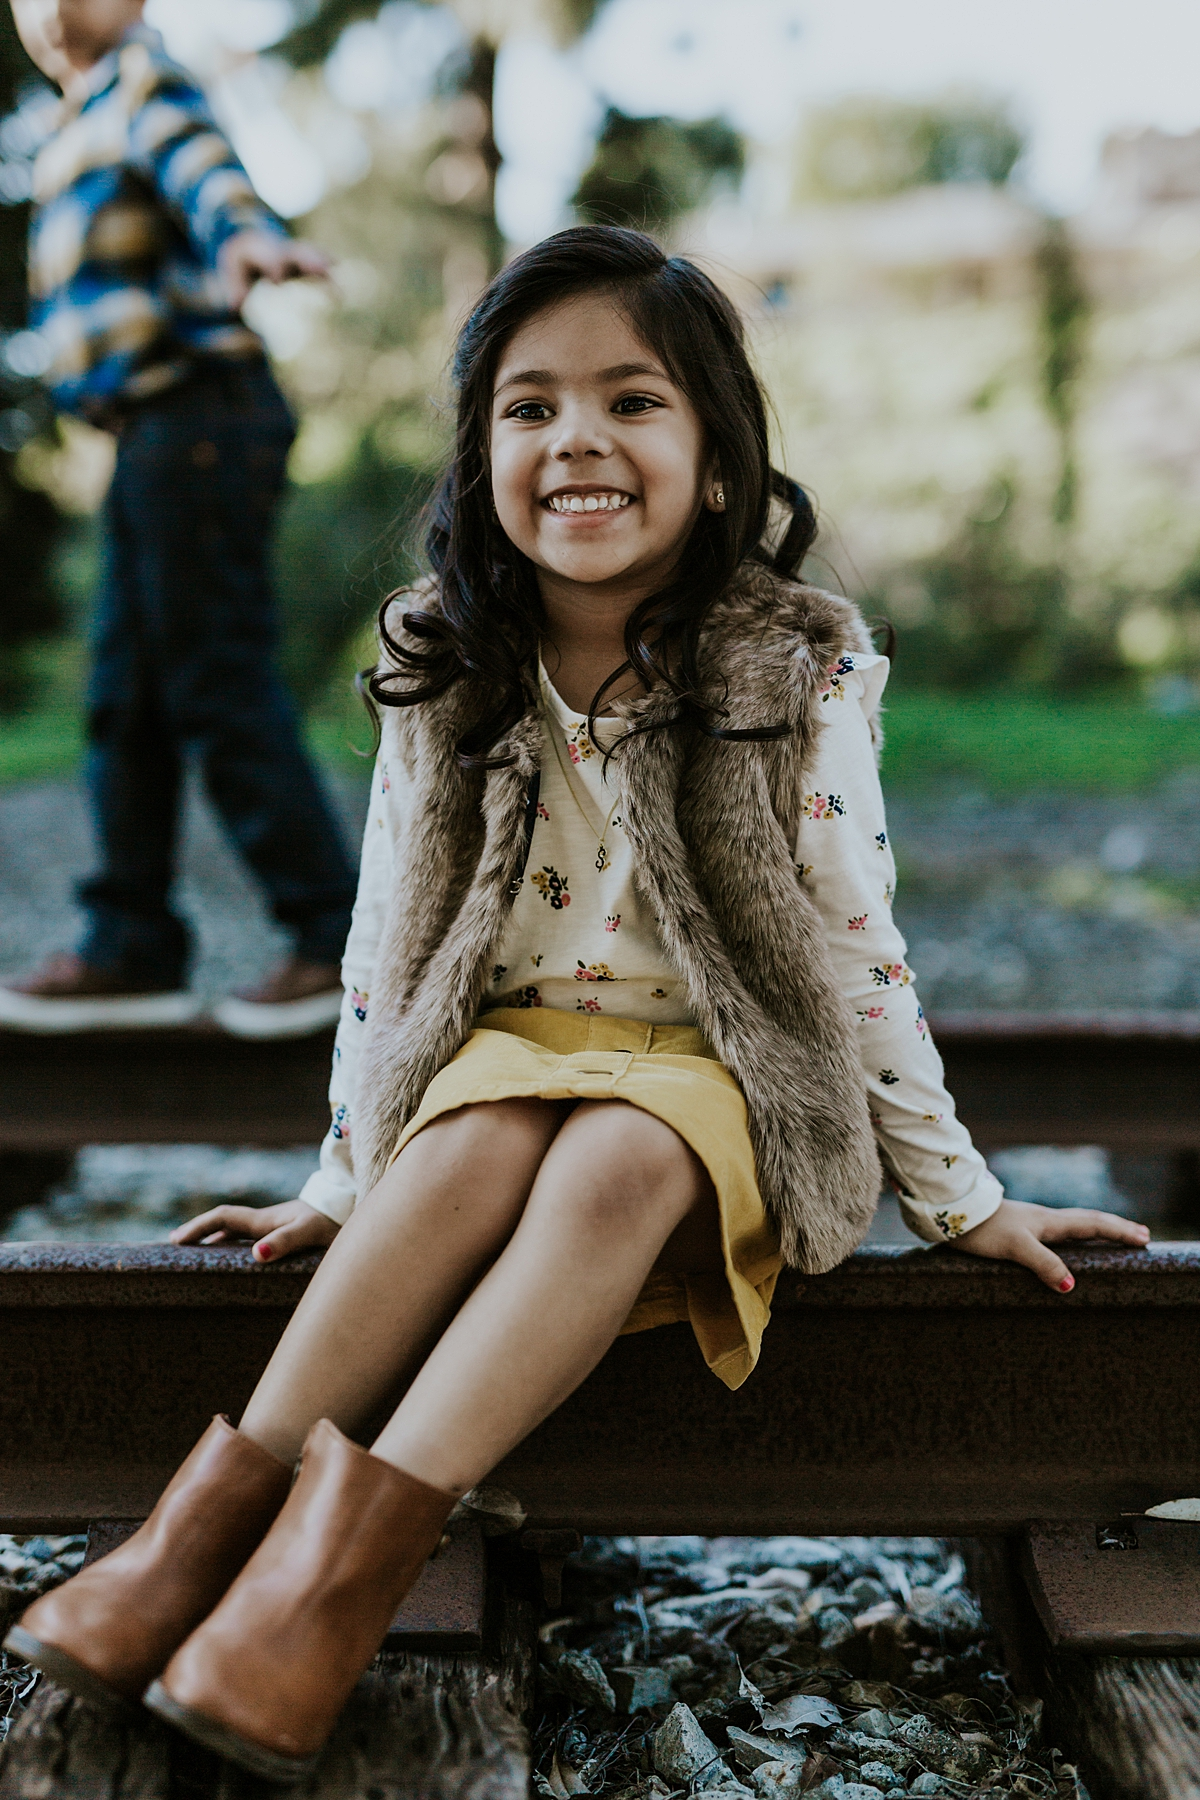 Orange County family photographer. Portrait of young girl in mustard skirt sitting on abandoned railway tracks with brother in the background during outdoor family photo shoot in orange county